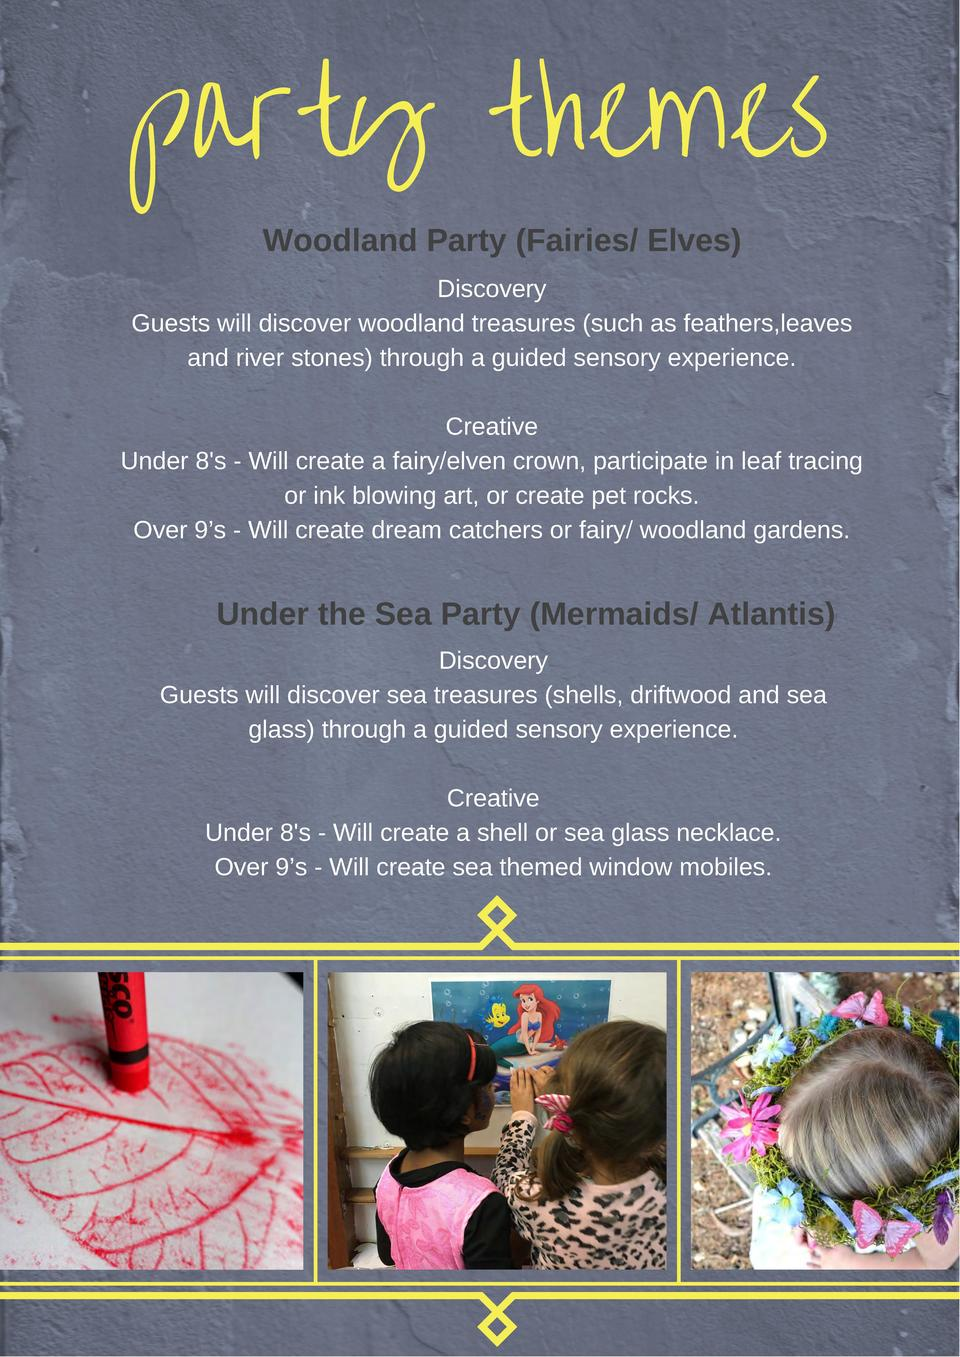 party themes Woodland Party  Fairies  Elves   Discovery Guests will discover woodland treasures  such as feathers,leaves a...